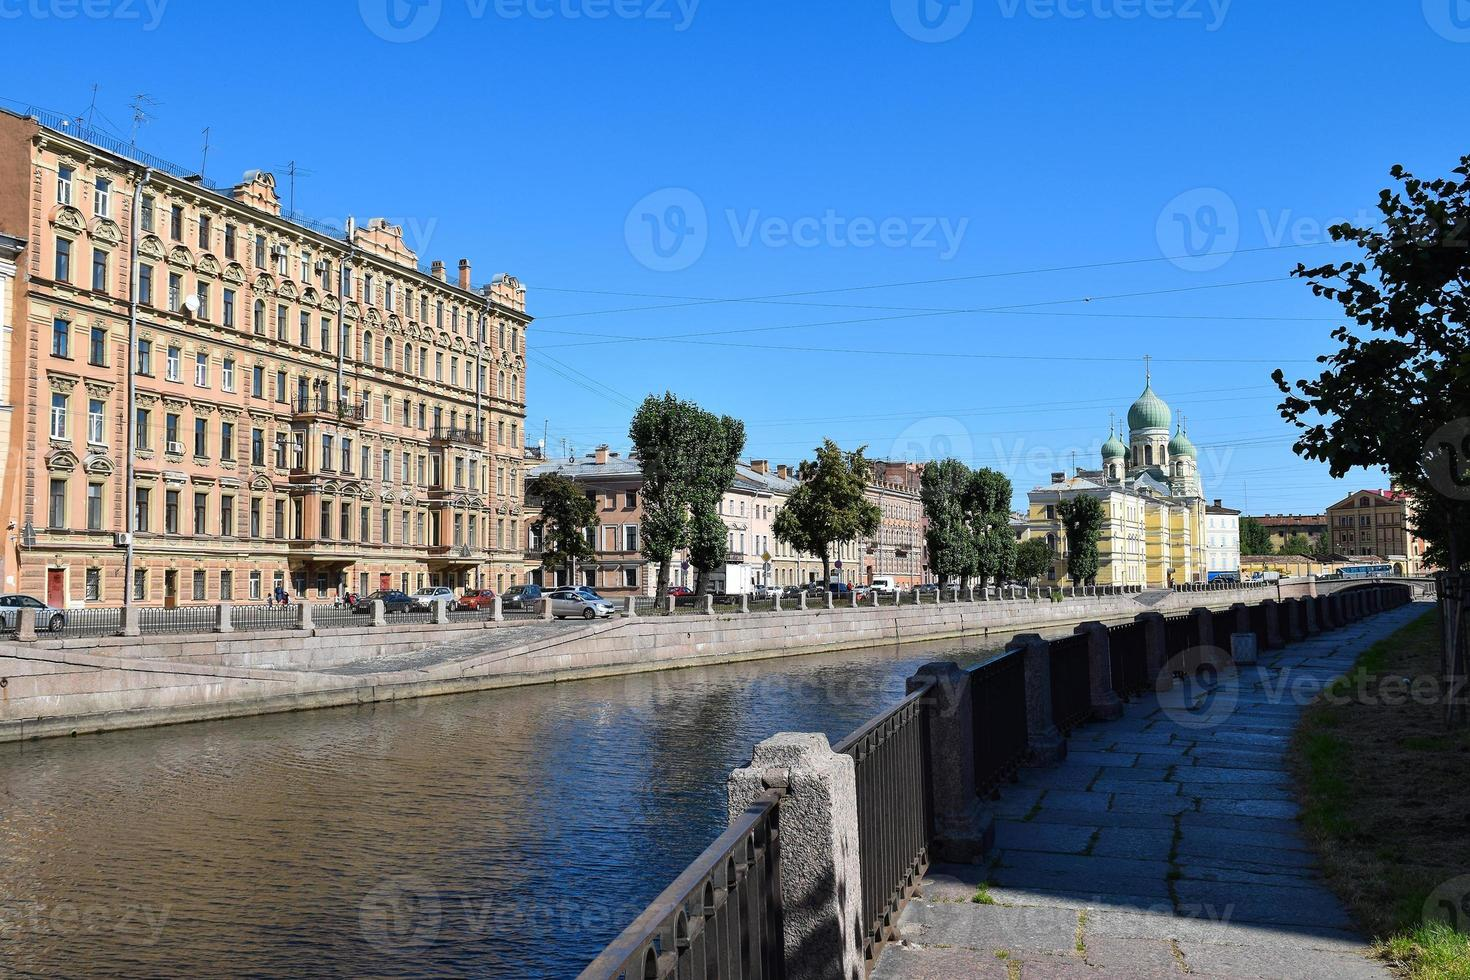 The Griboyedov canal embankment in Leningrad. photo